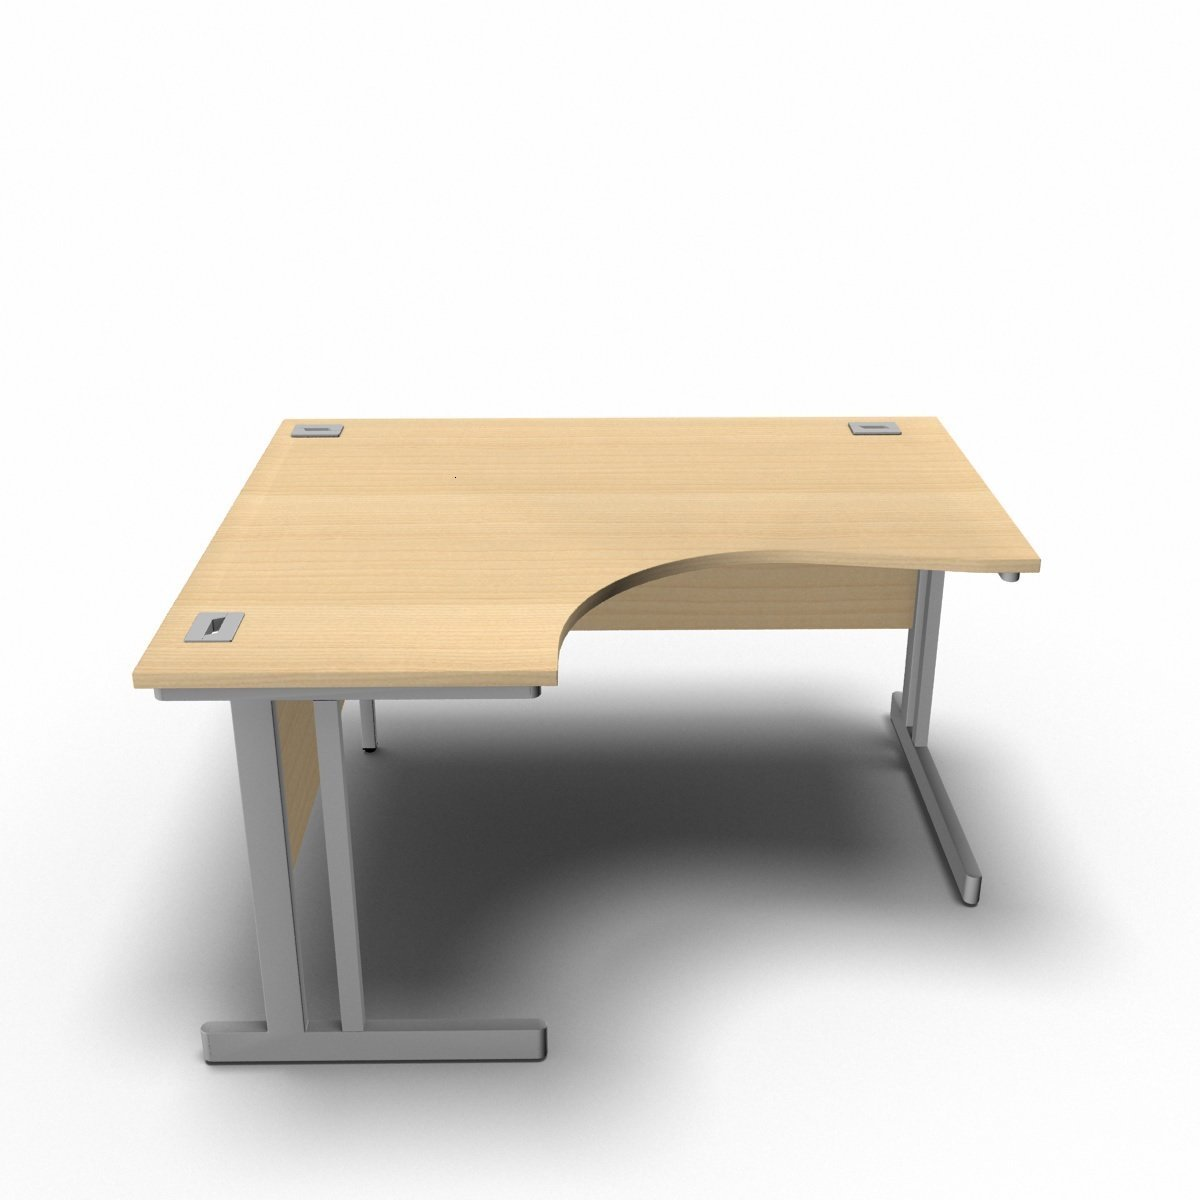 Desk 1400 x 1200 x 800 x 600mm / Left / Maple Synergy Crescent Desks